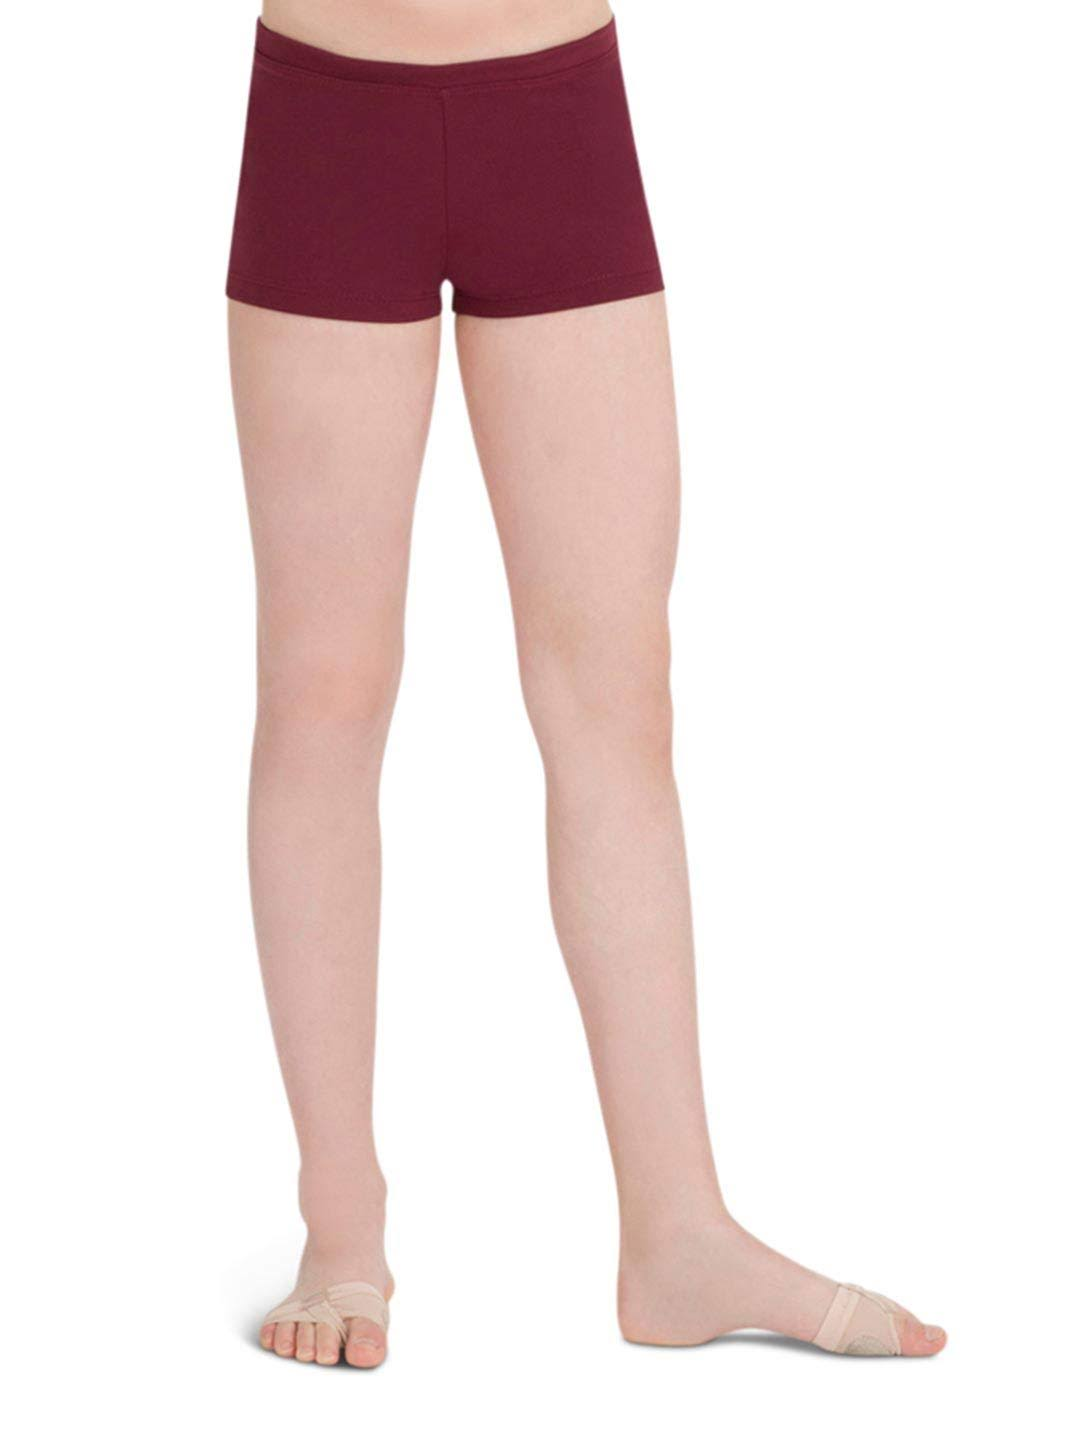 Capezio Girls' Boy Cut Low Rise Shorts - Maroon, Large, 12-14